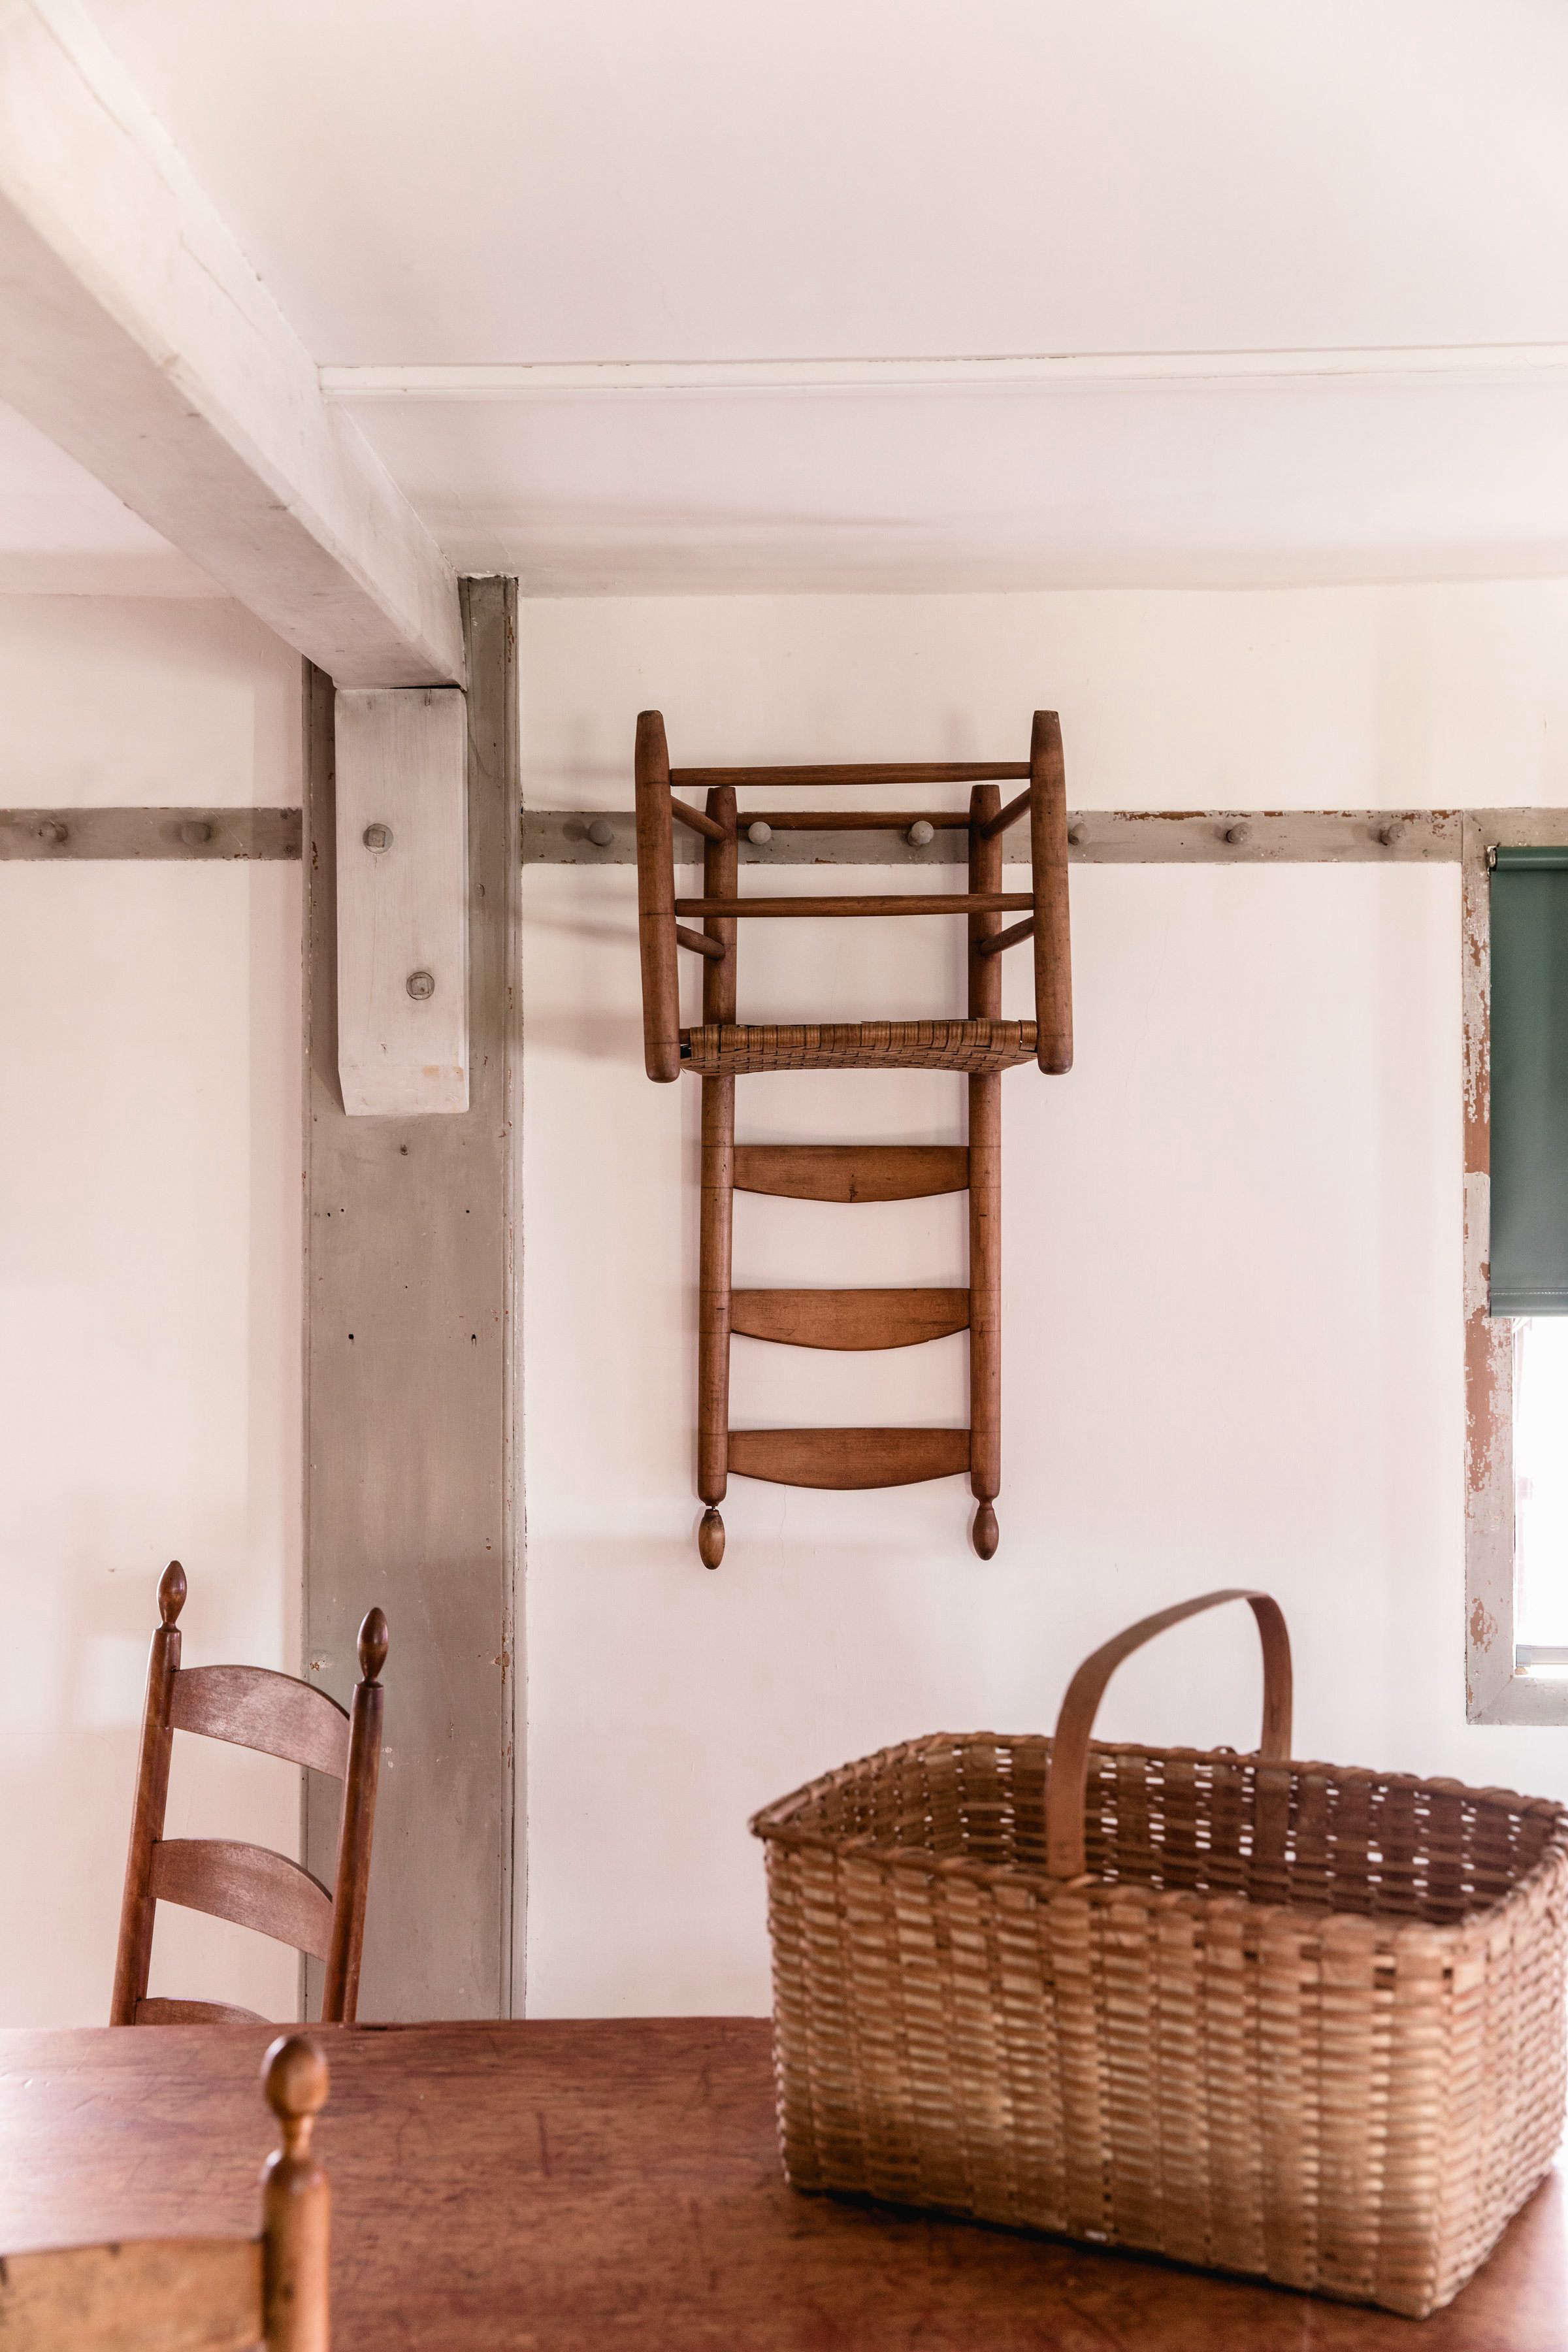 Chair on Peg Rail at Canterbury Shaker Village, Photo by Erin Little